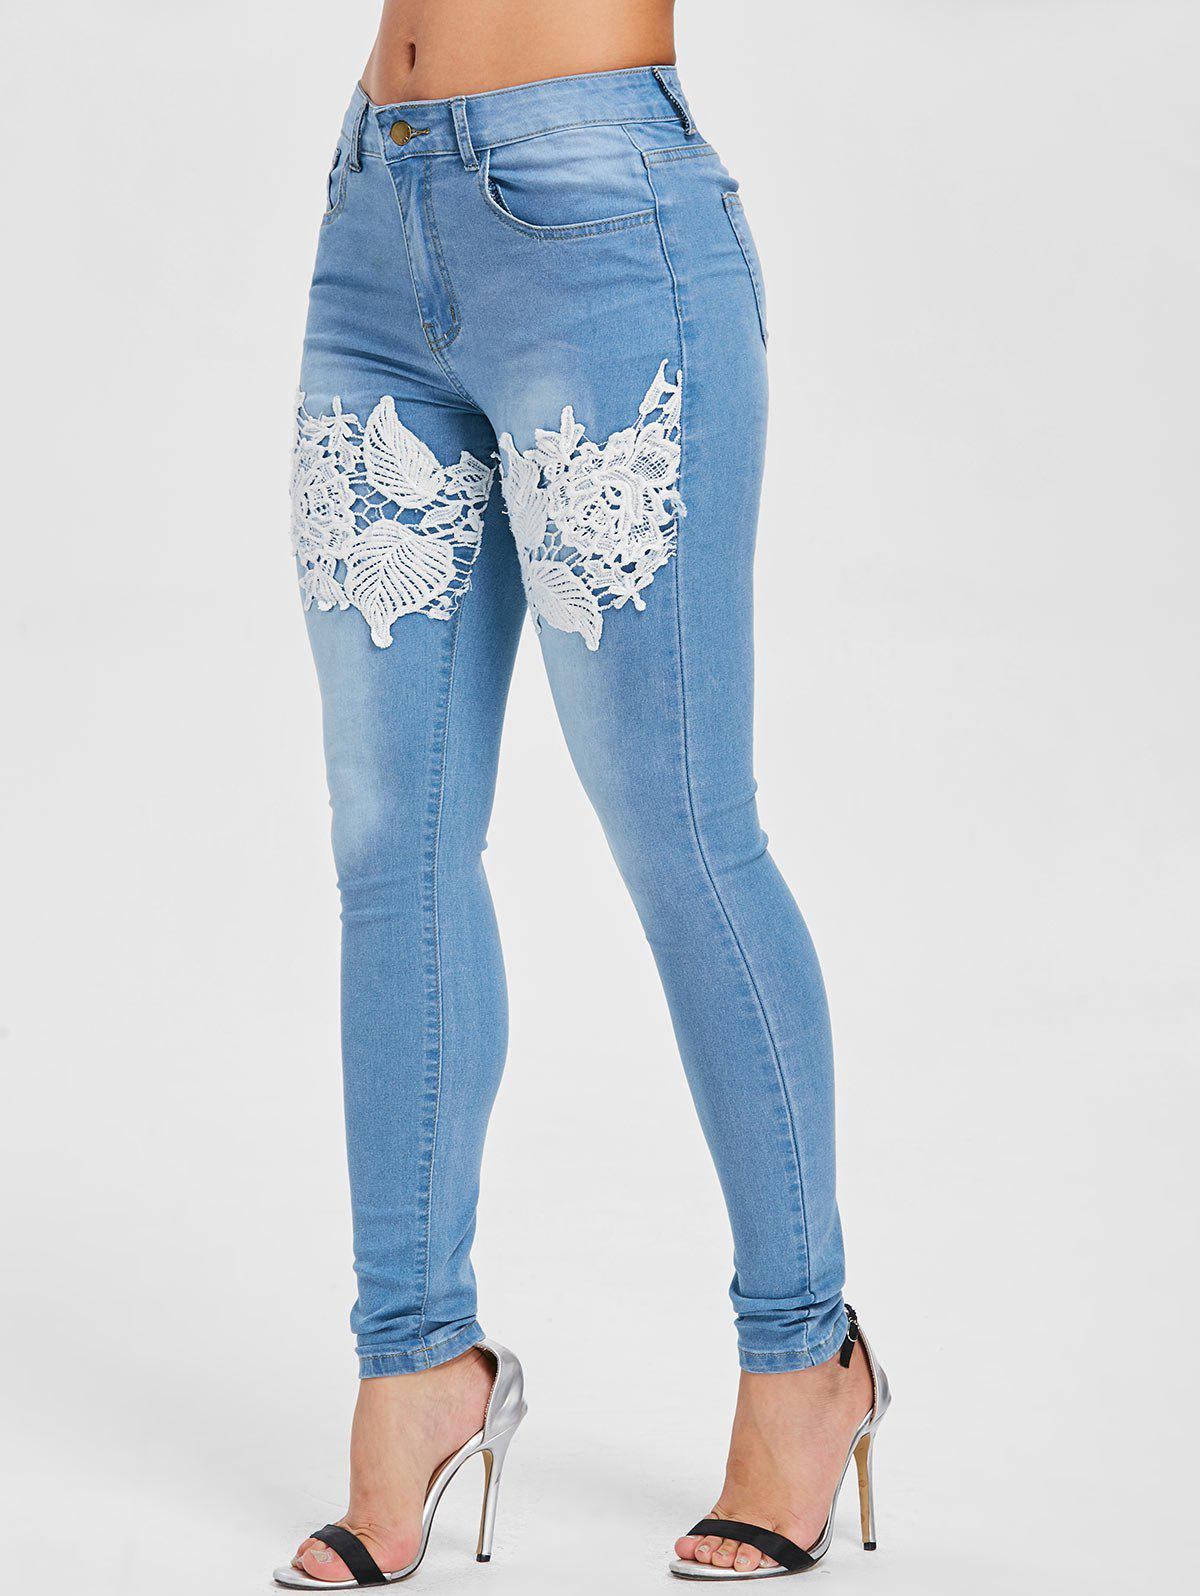 Floral Applique Pencil Jeans - JEANS BLUE XL